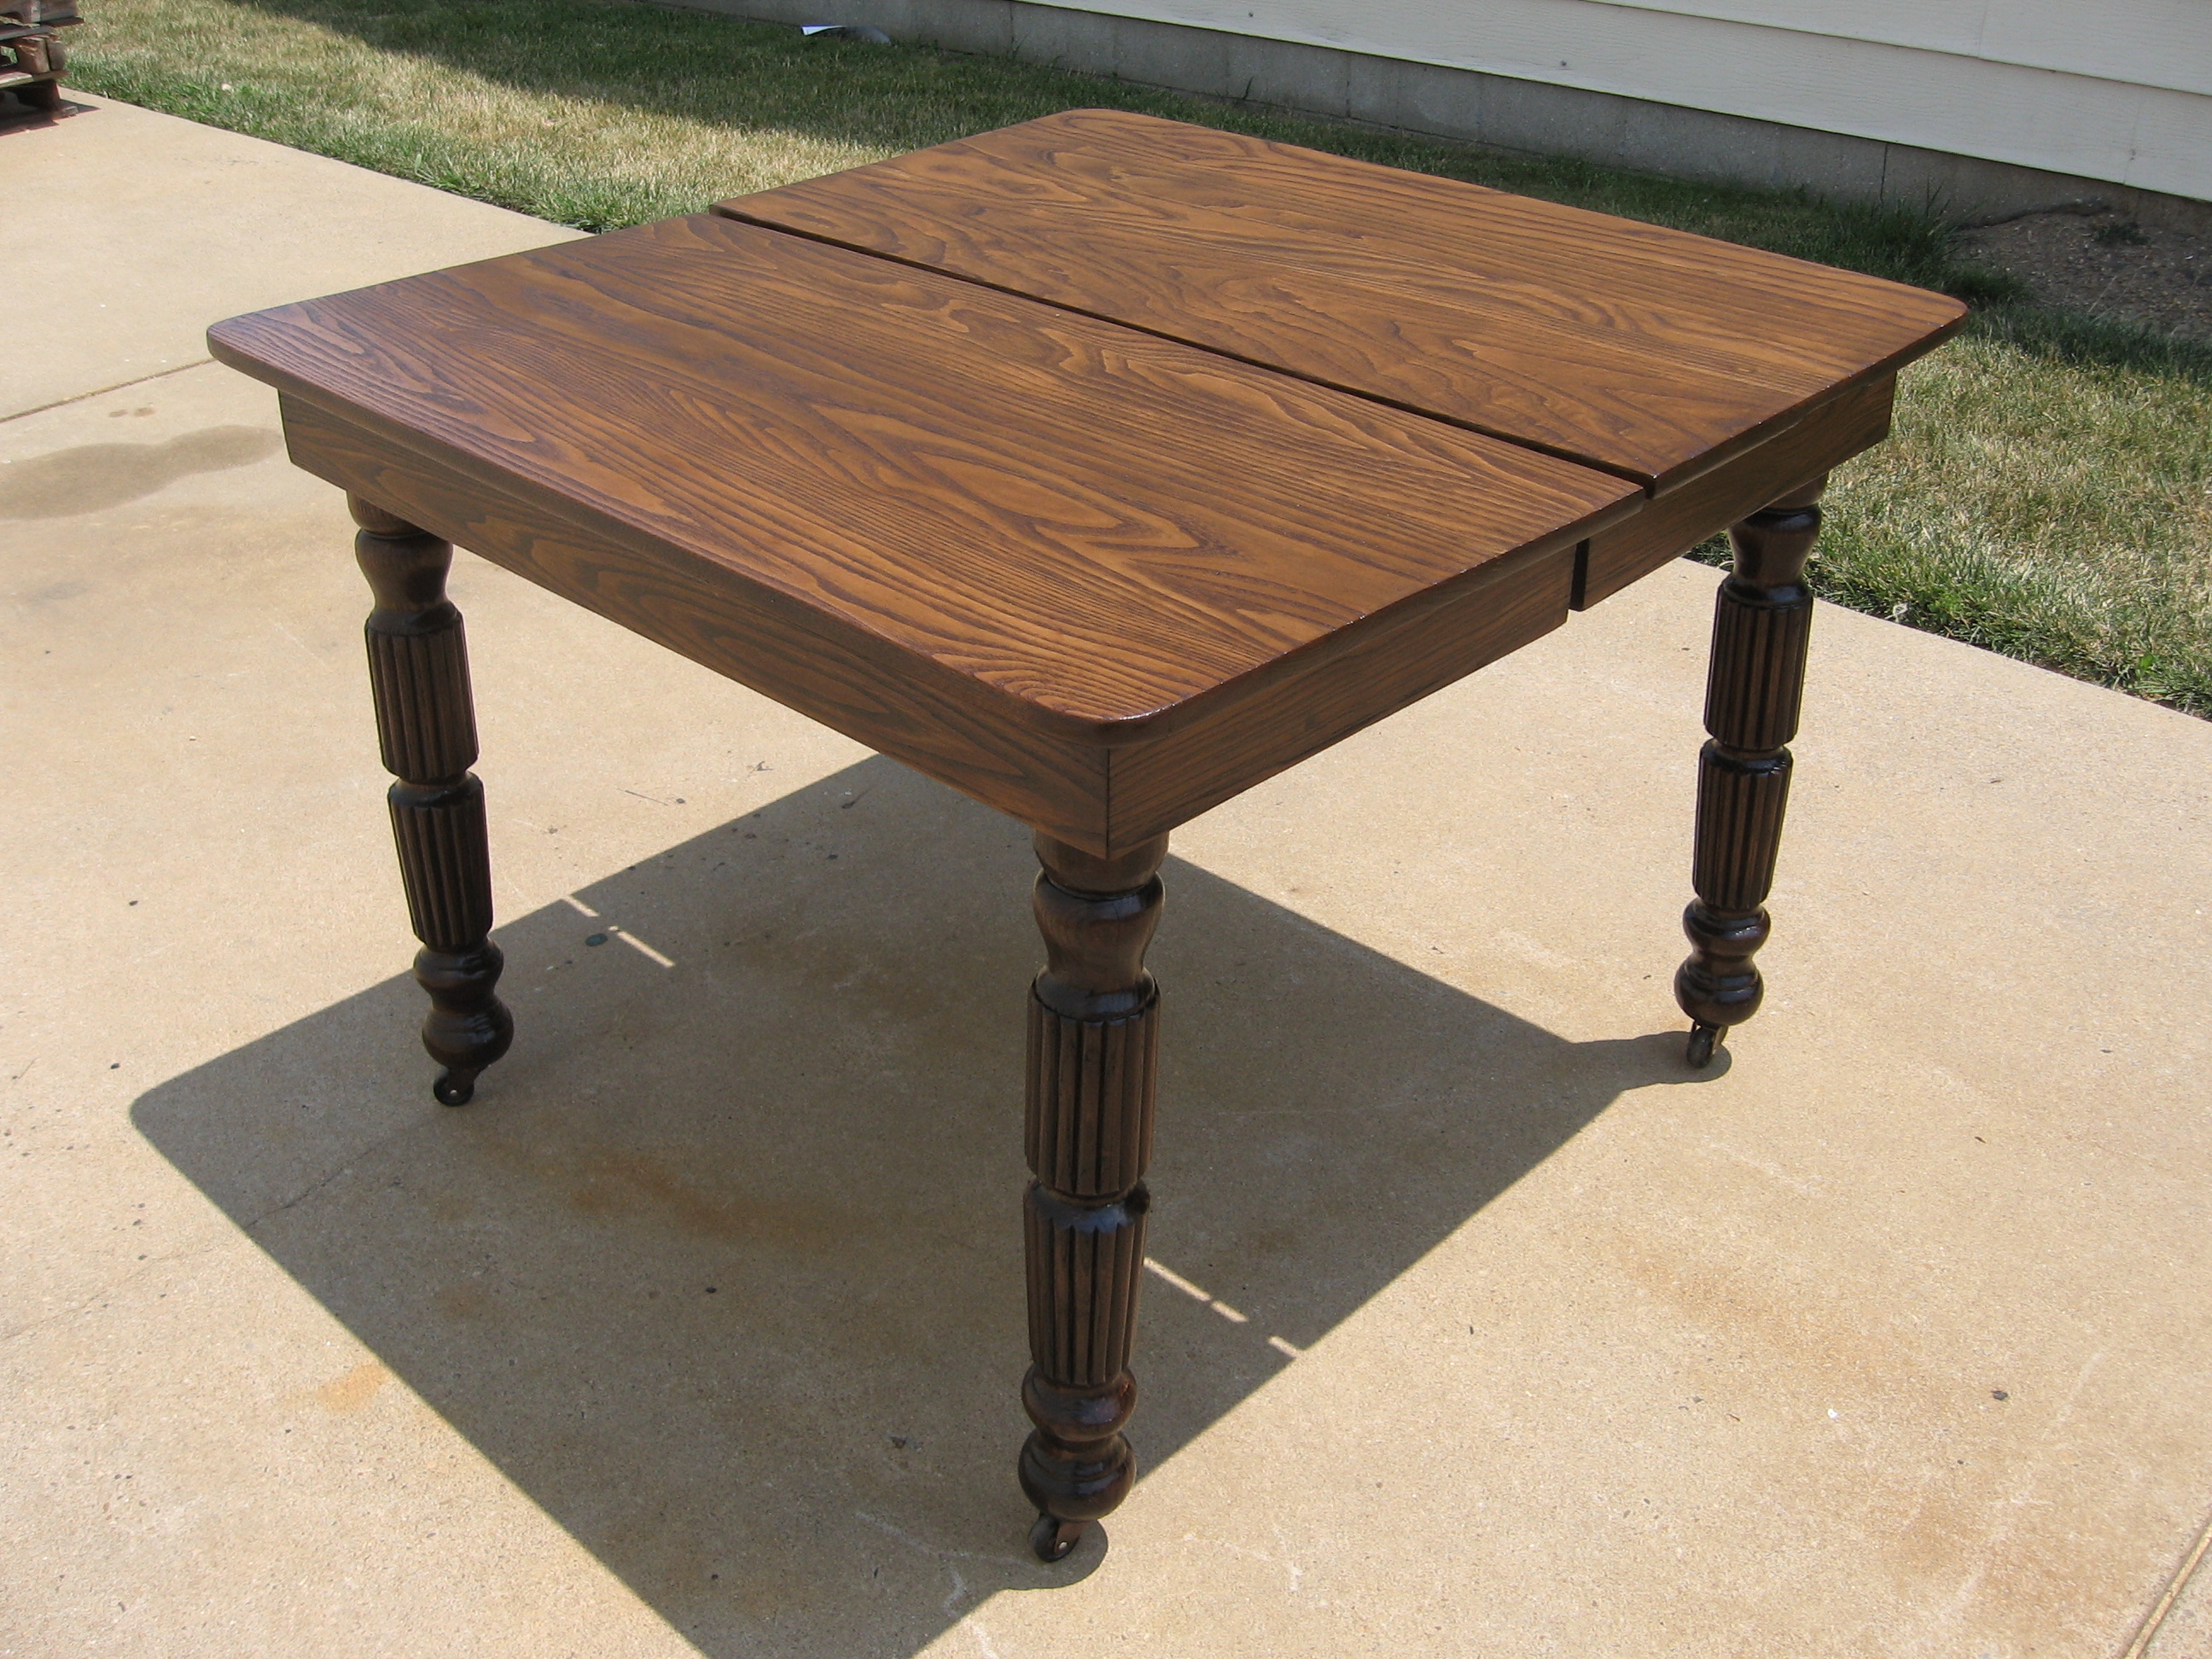 Swell Refinished Oak Dining Table Ana White Download Free Architecture Designs Scobabritishbridgeorg